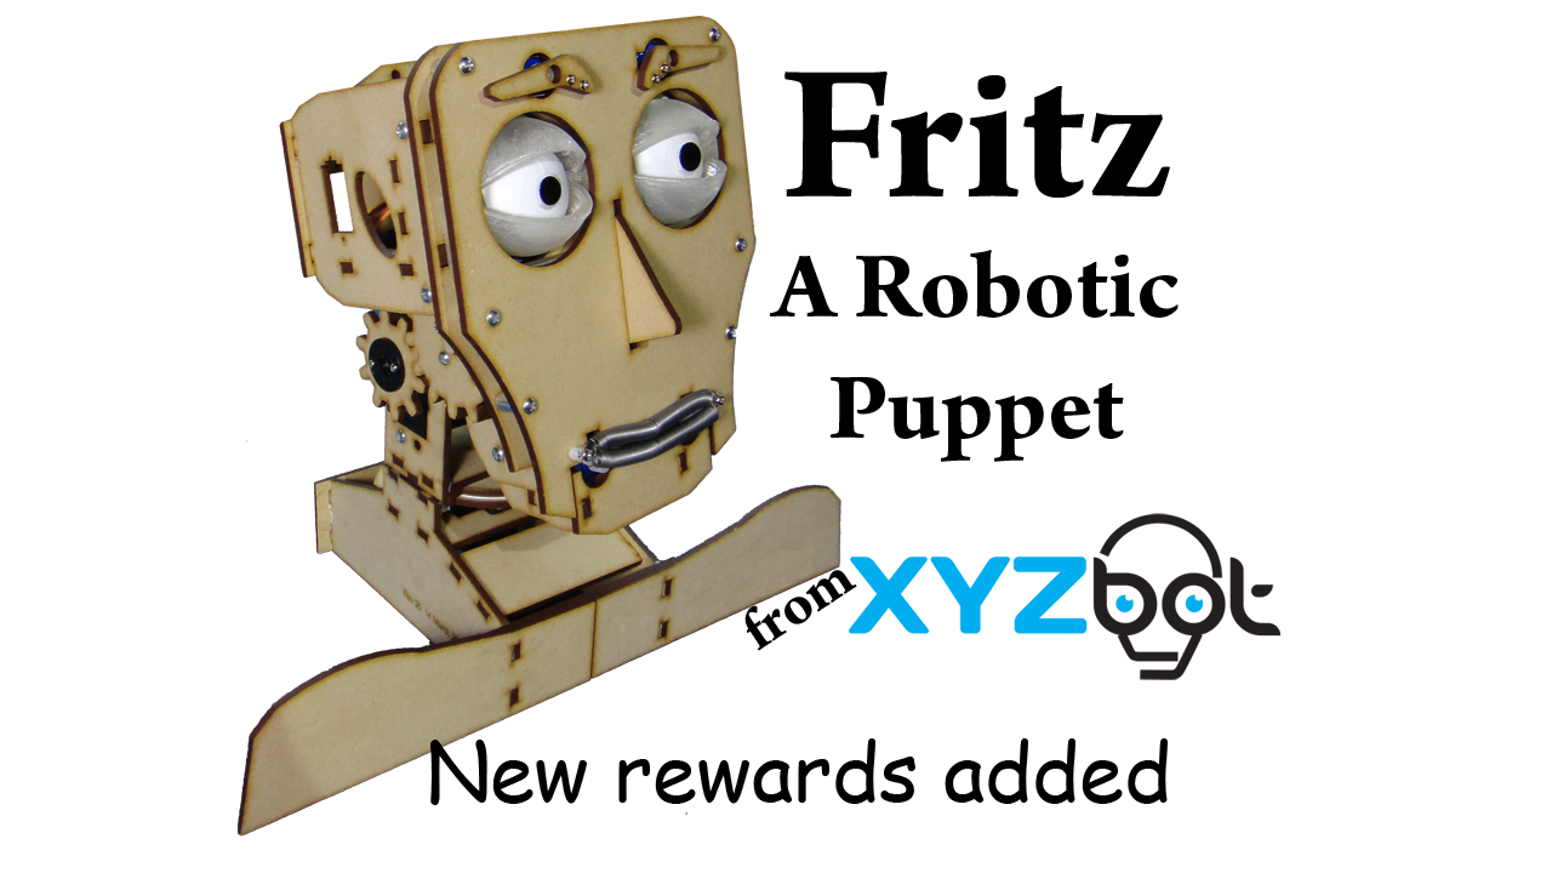 Fritz is a robotic puppet head that you can control with an easy to use app. He has moving eyes, jaw, eyelids, eyebrows, and neck.